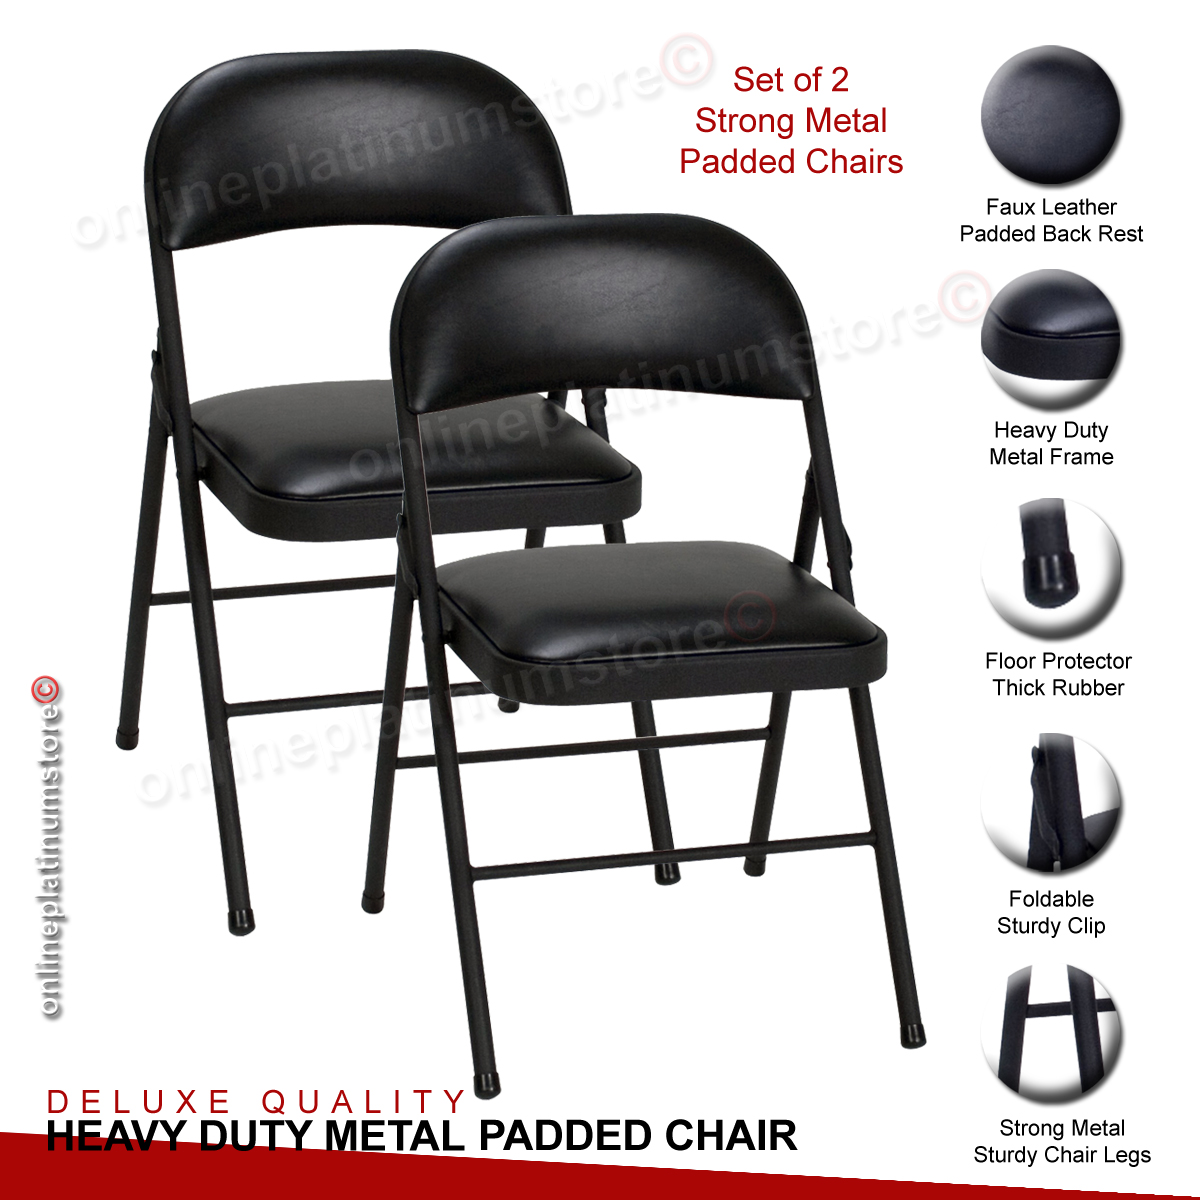 collapsible computer chair office buy online set of two strong metal frame faux leather padded folding